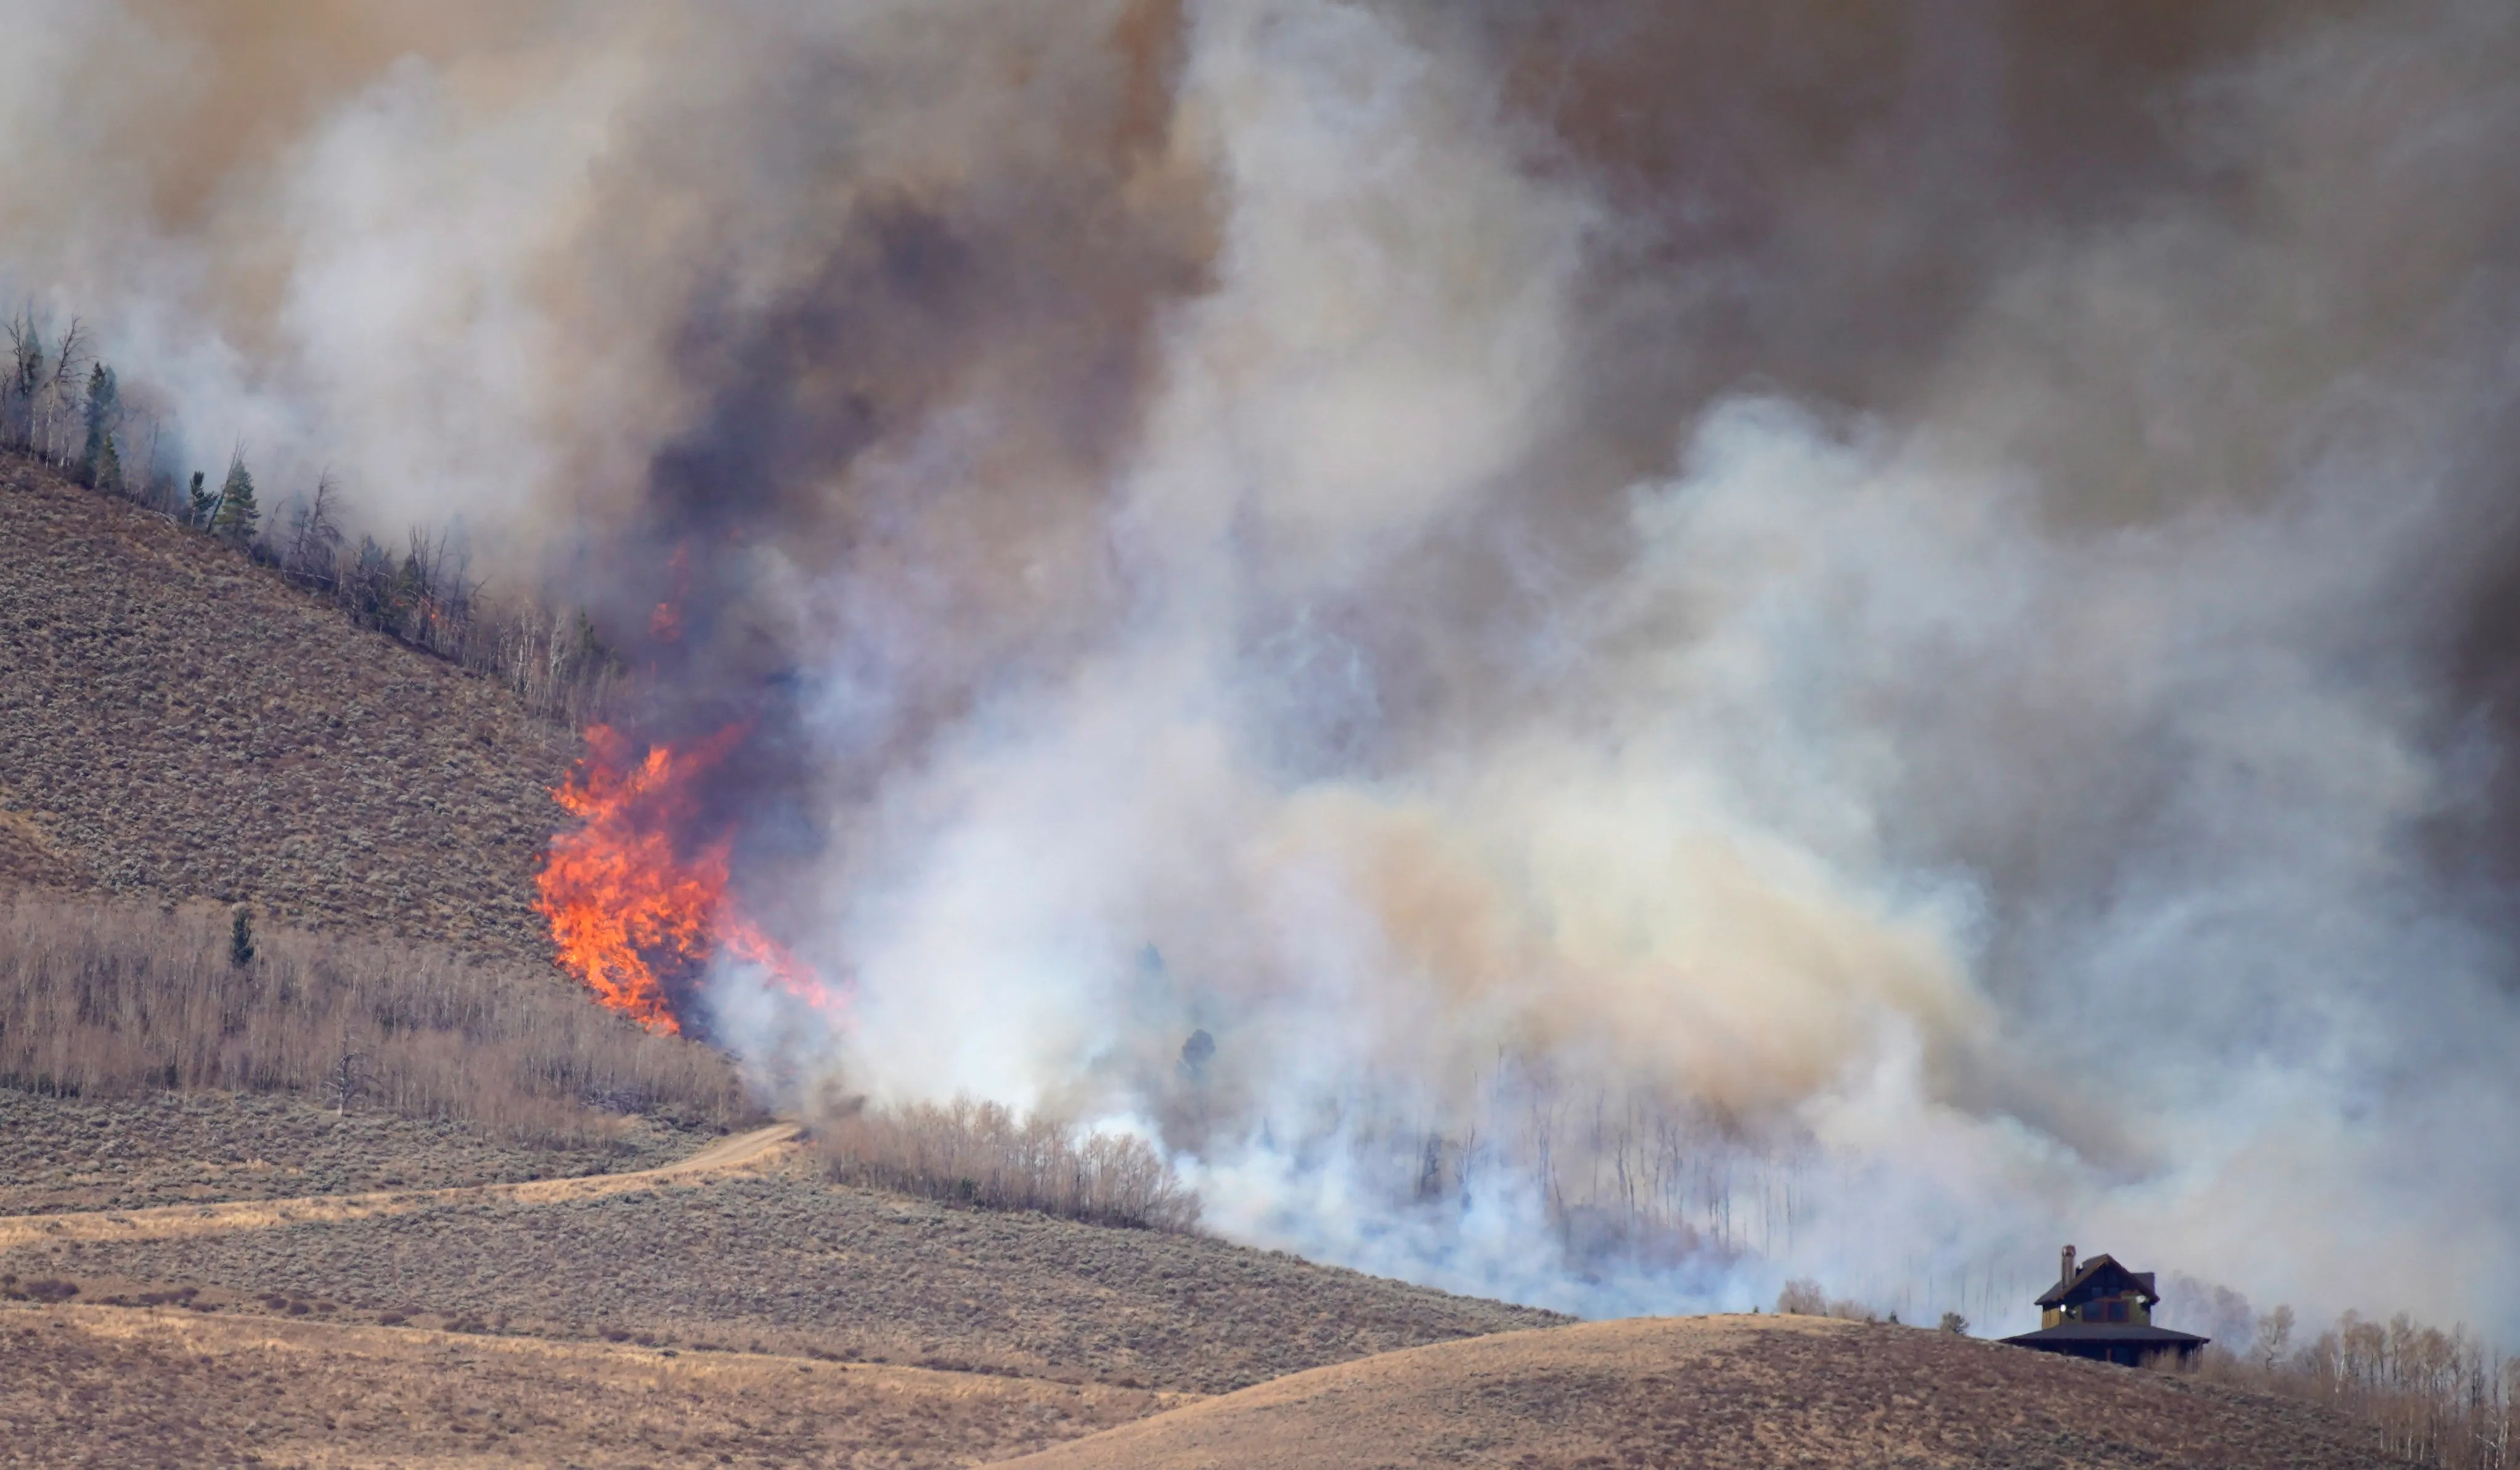 Colorado Couple in Their 80s Die in Wildfire After Refusing to Evacuate Beloved Home